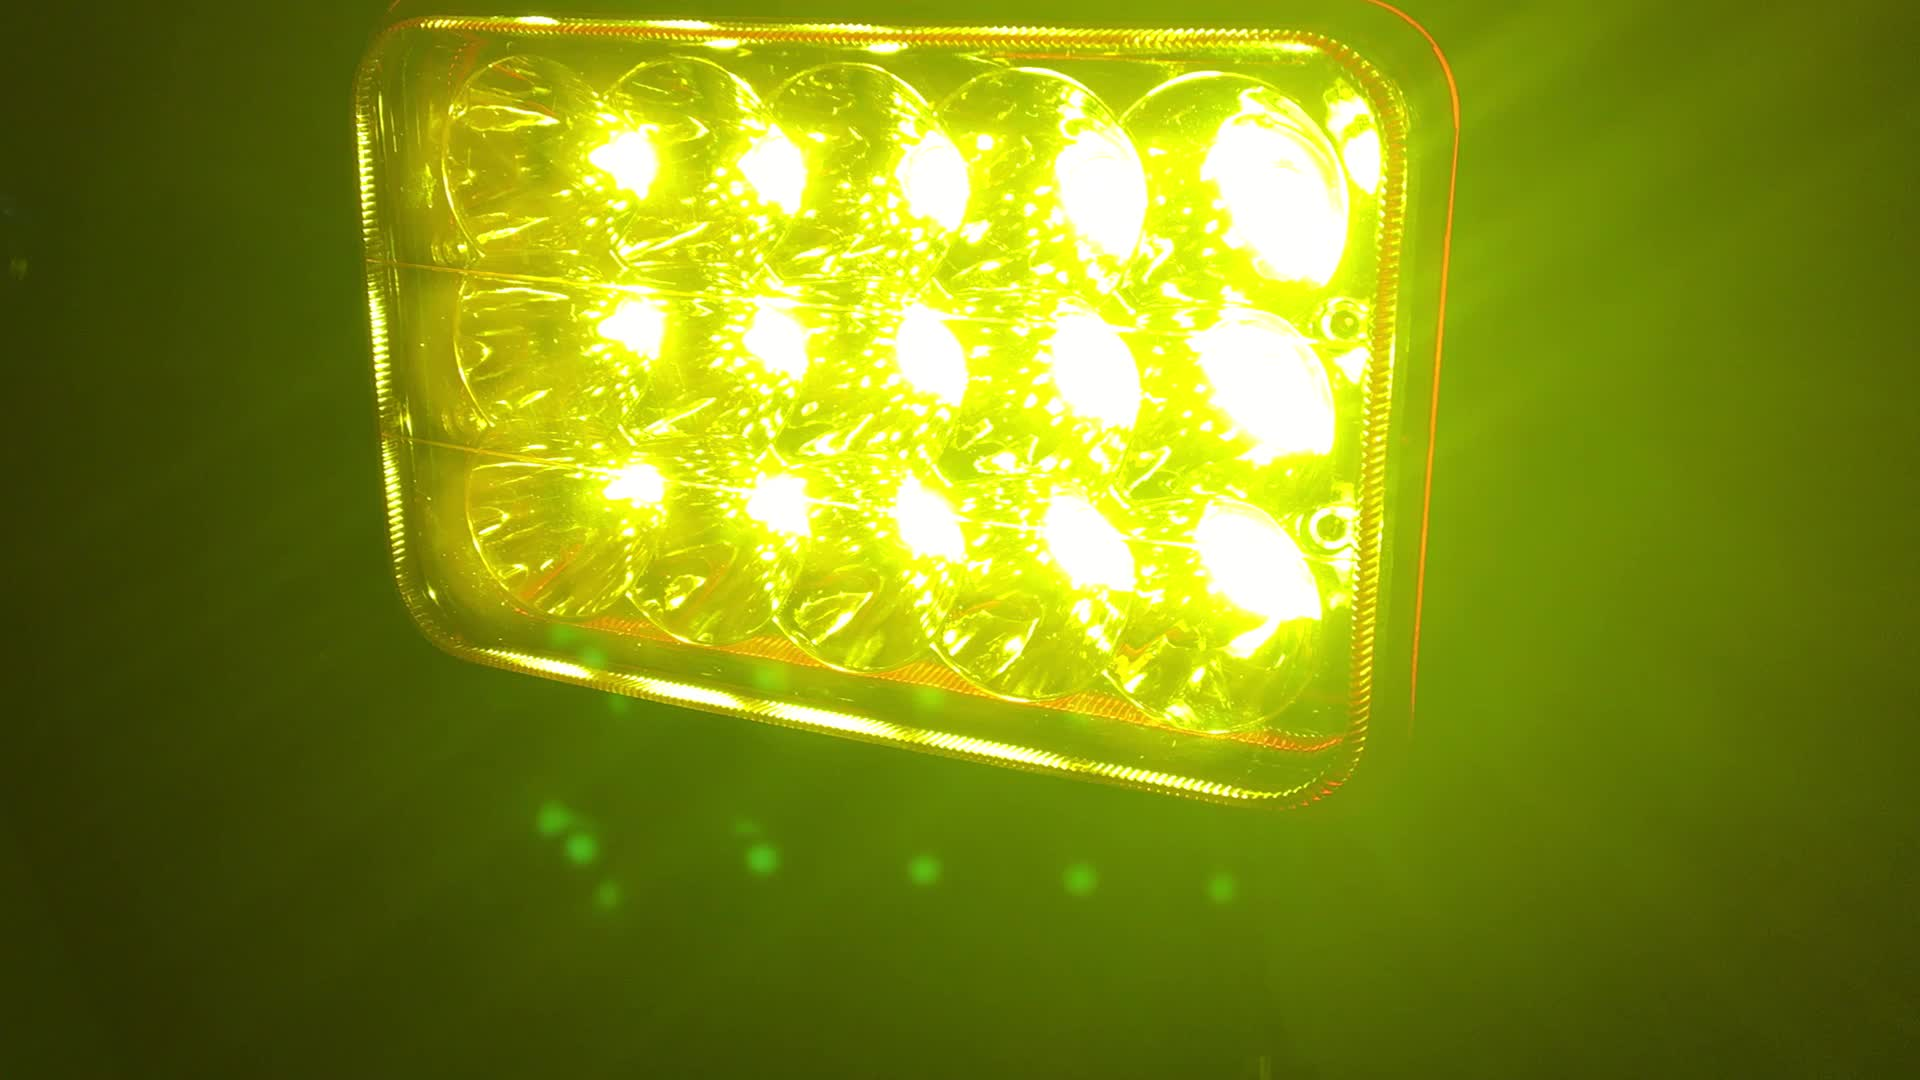 5.5 inch led work light 45w led driving light with 4d reflector for tractor, trucks, ATV, offroad